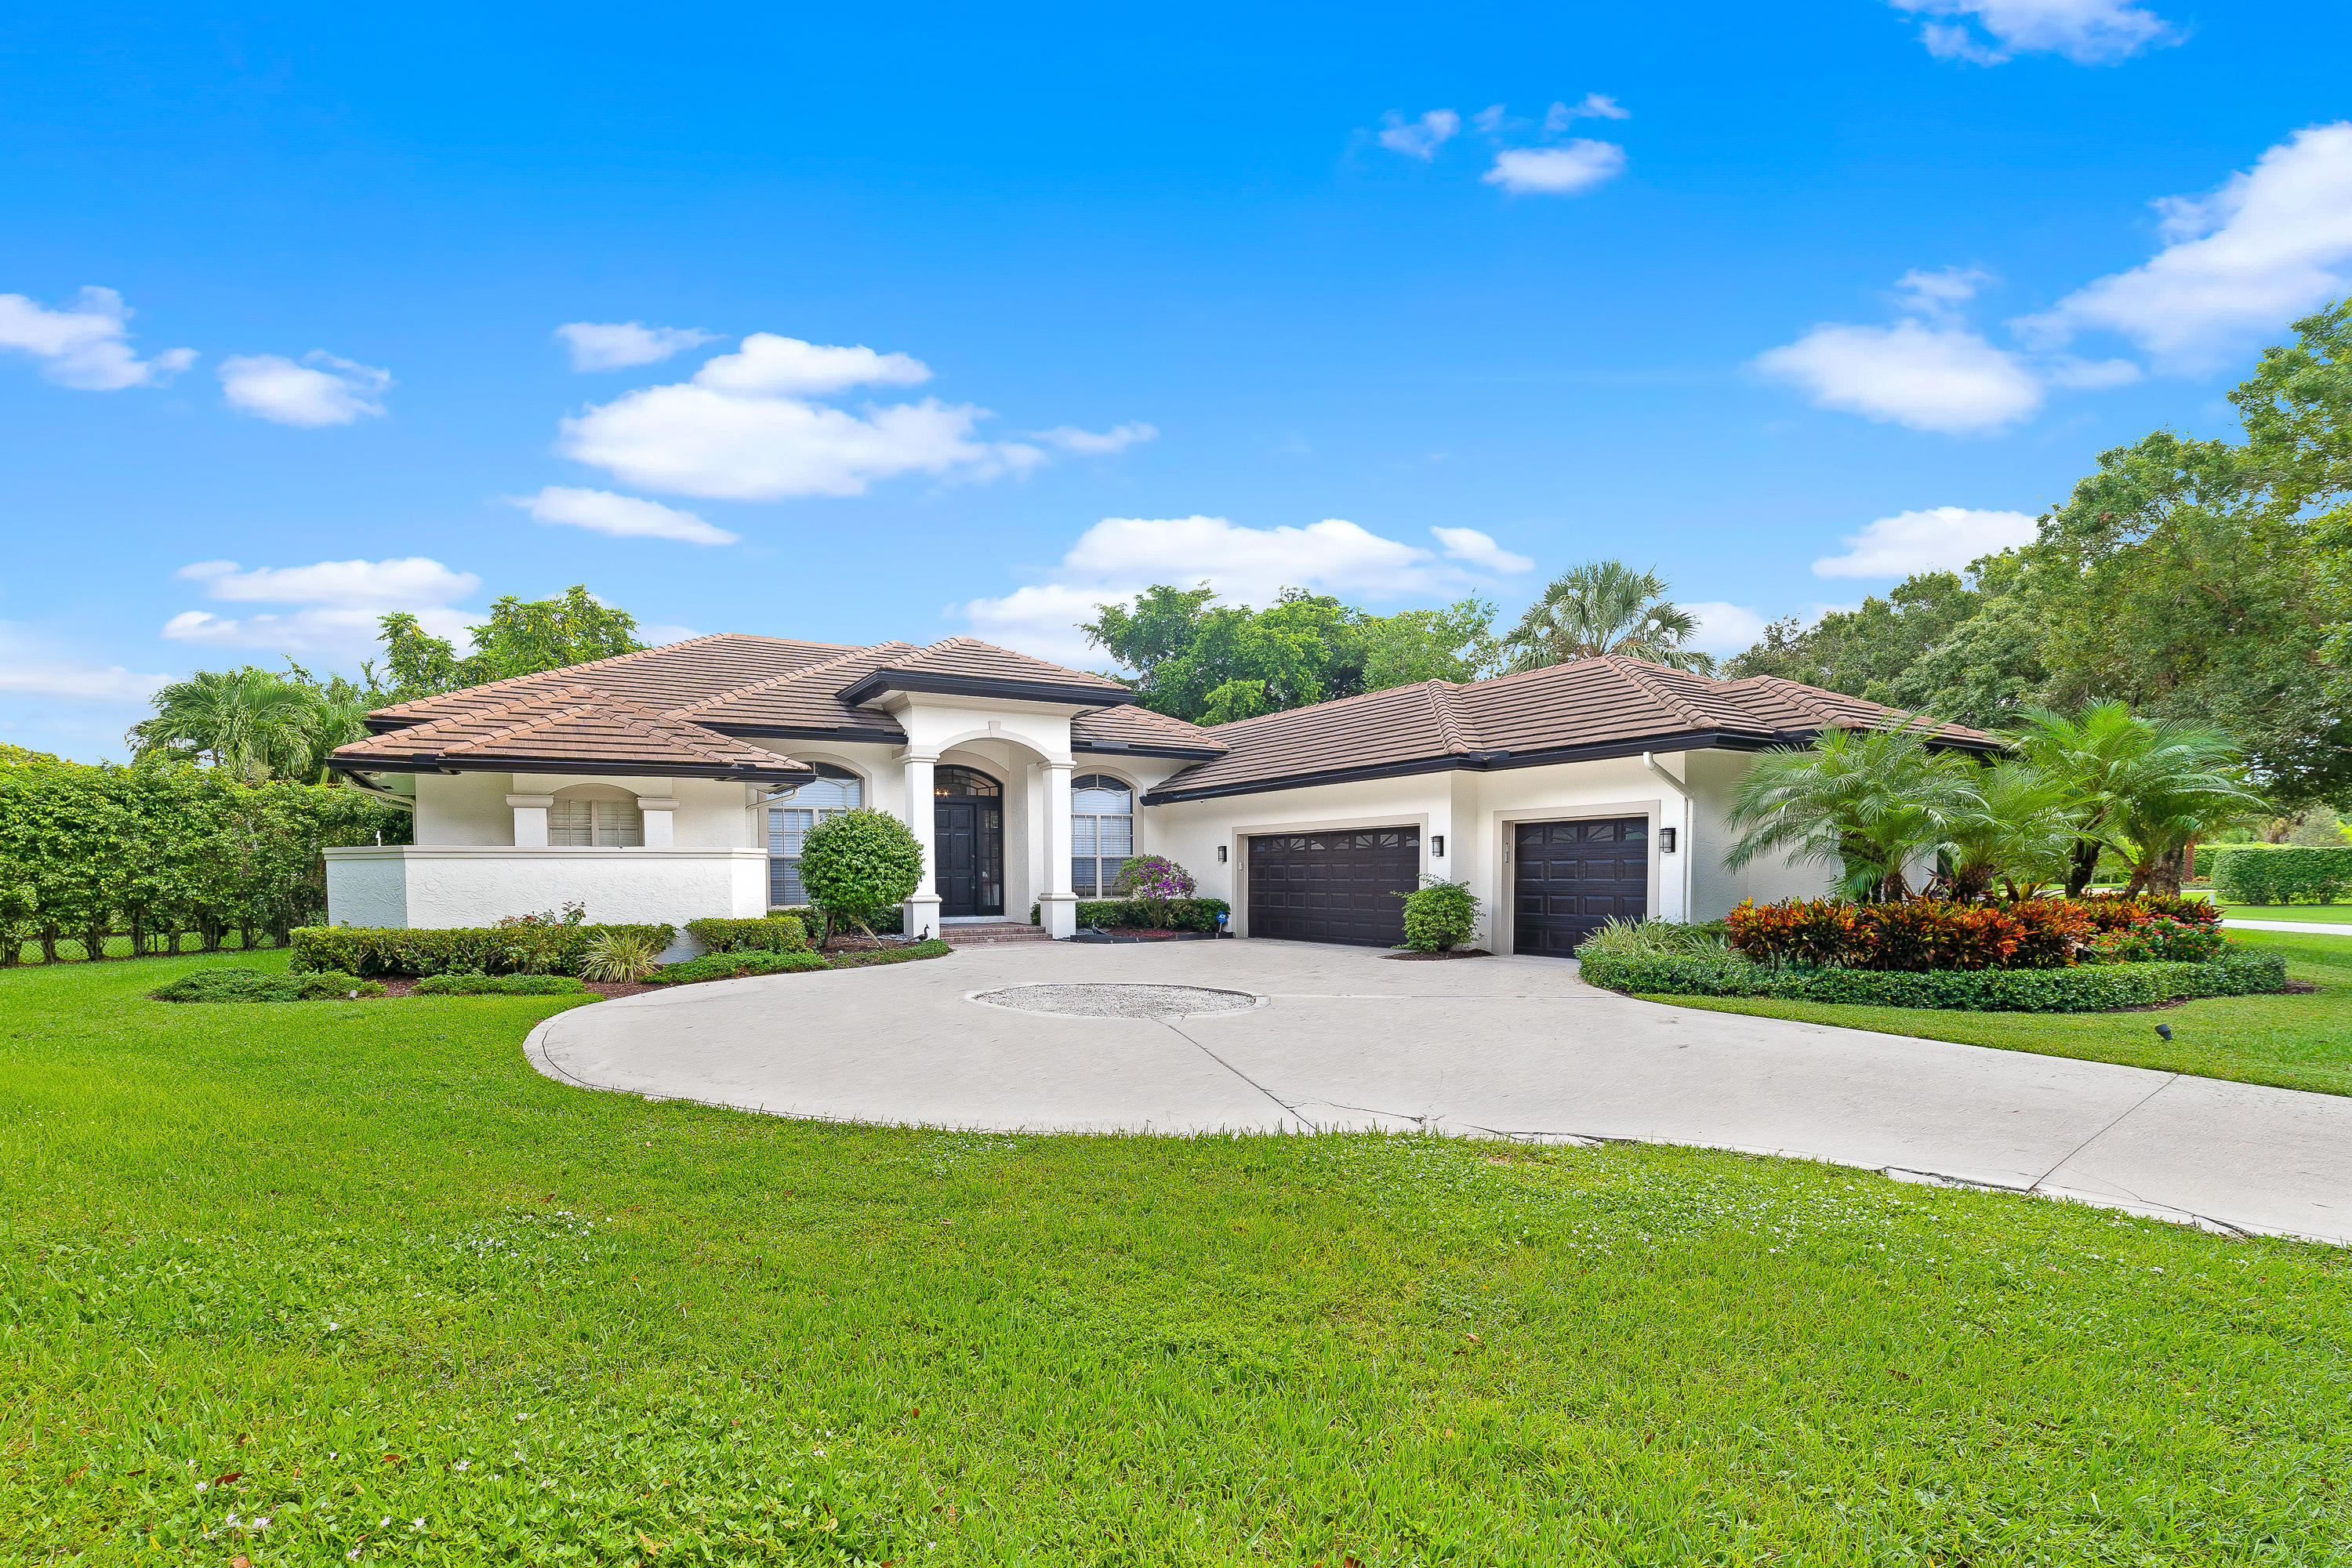 Details for 5715 Whirlaway Road, Palm Beach Gardens, FL 33418